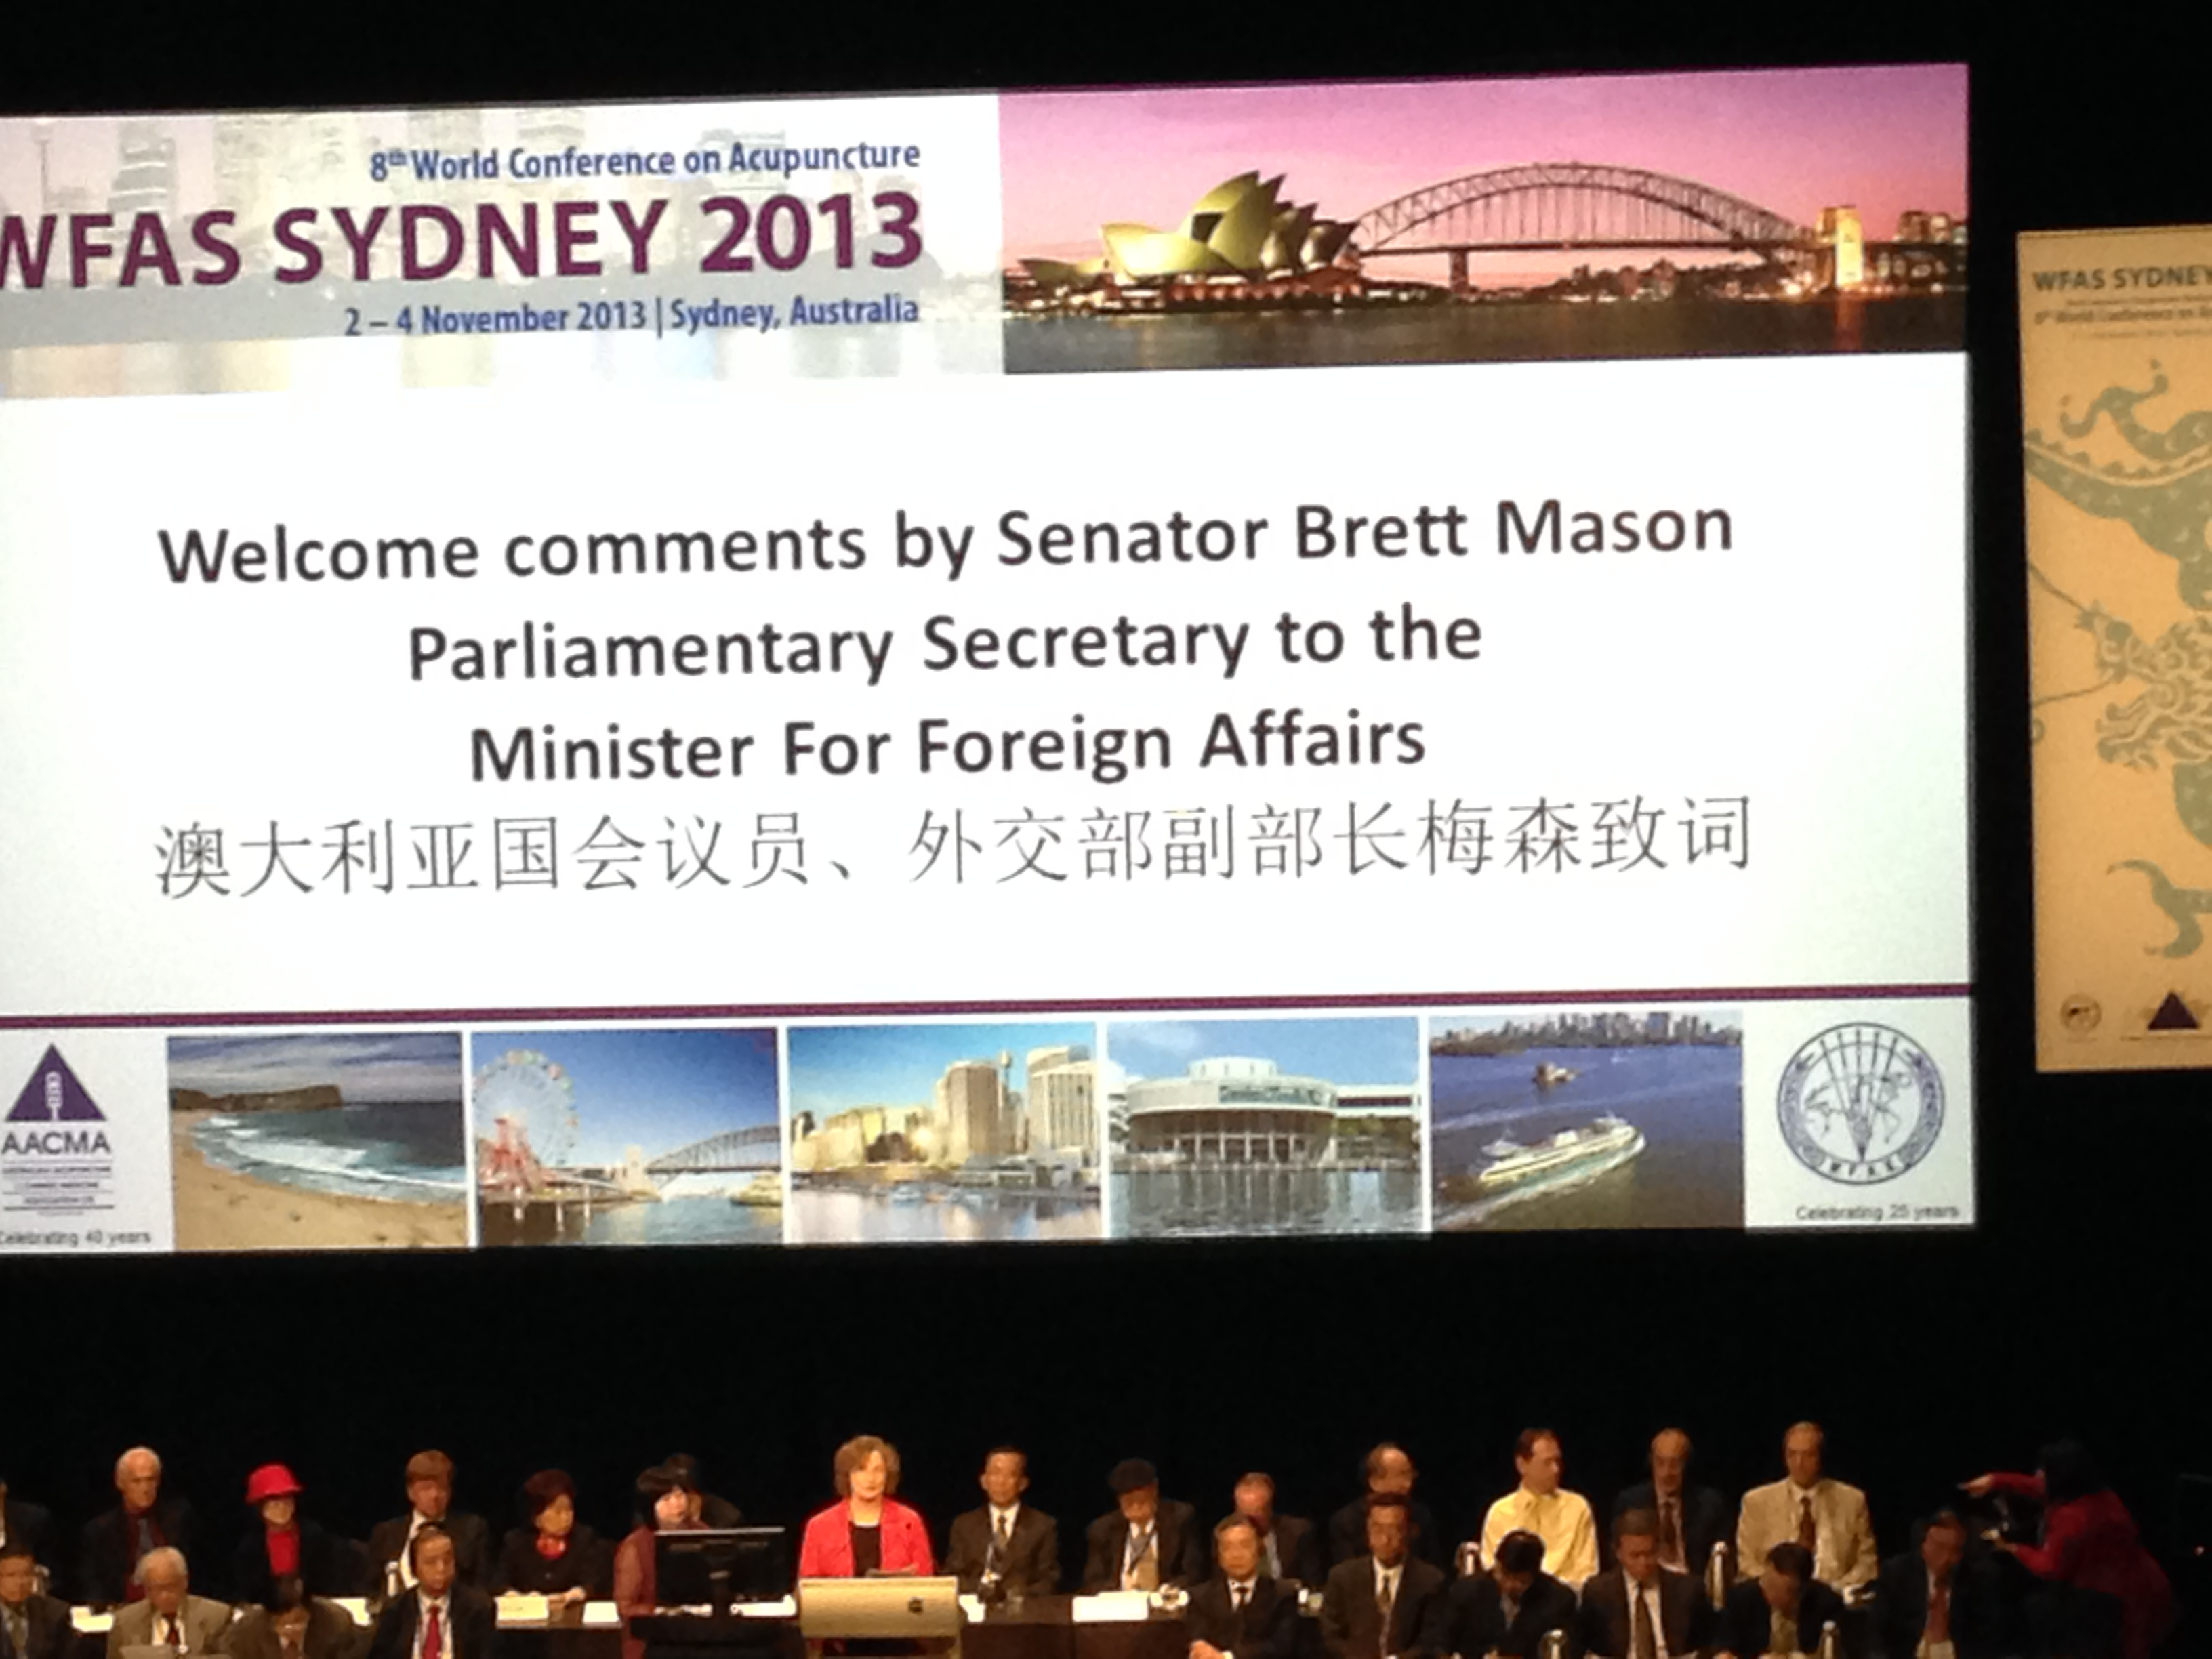 Attend World Federation of Acupuncture and Moxibustion Societies Convention in Sydney, Nov 2, 2013